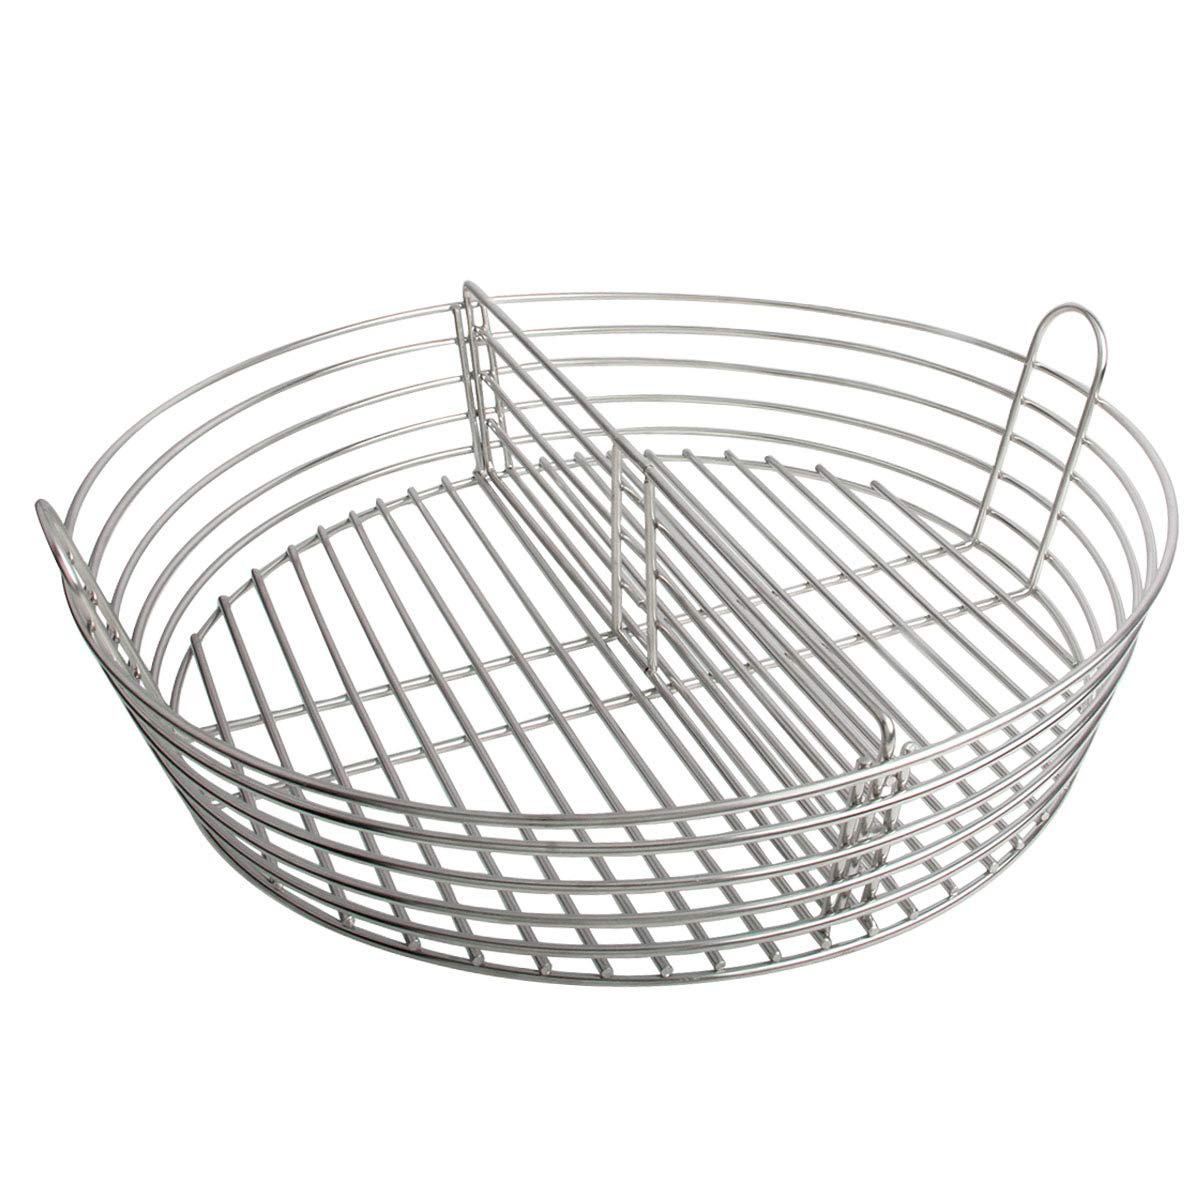 KAMaster Stainless Steel Charcoal Ash Basket for XLarge Big Green Egg,Lump Charcoal Fire Basket with Divider Perfect Accessories Instead Fire Grate by KAMaster